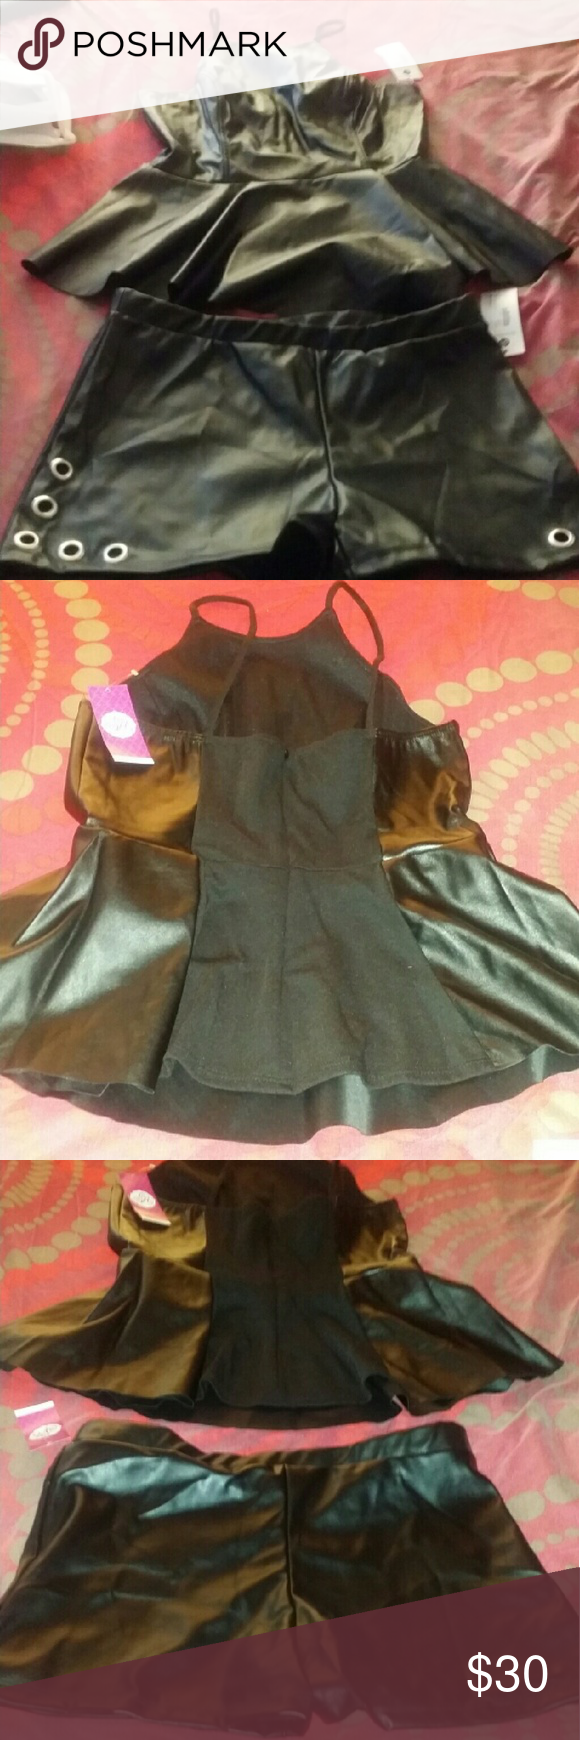 Faux leather set Top and shorts Other